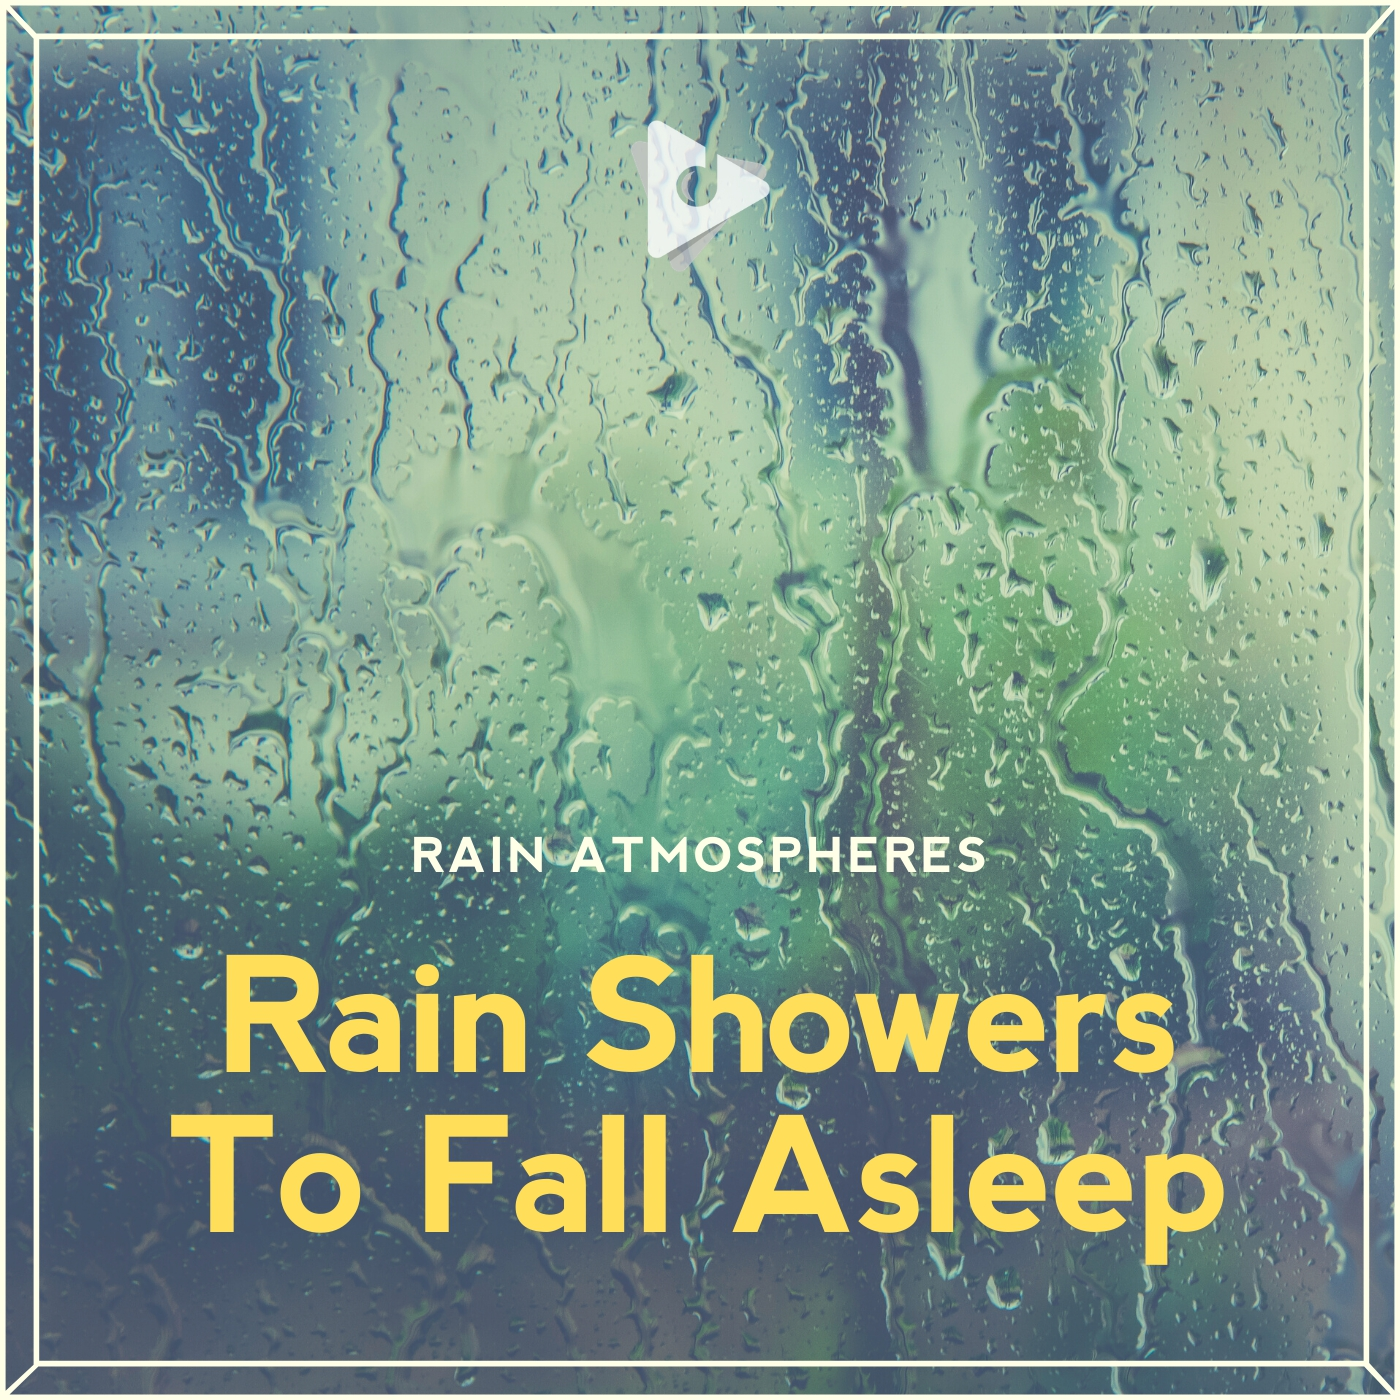 Rain Showers To Fall Asleep